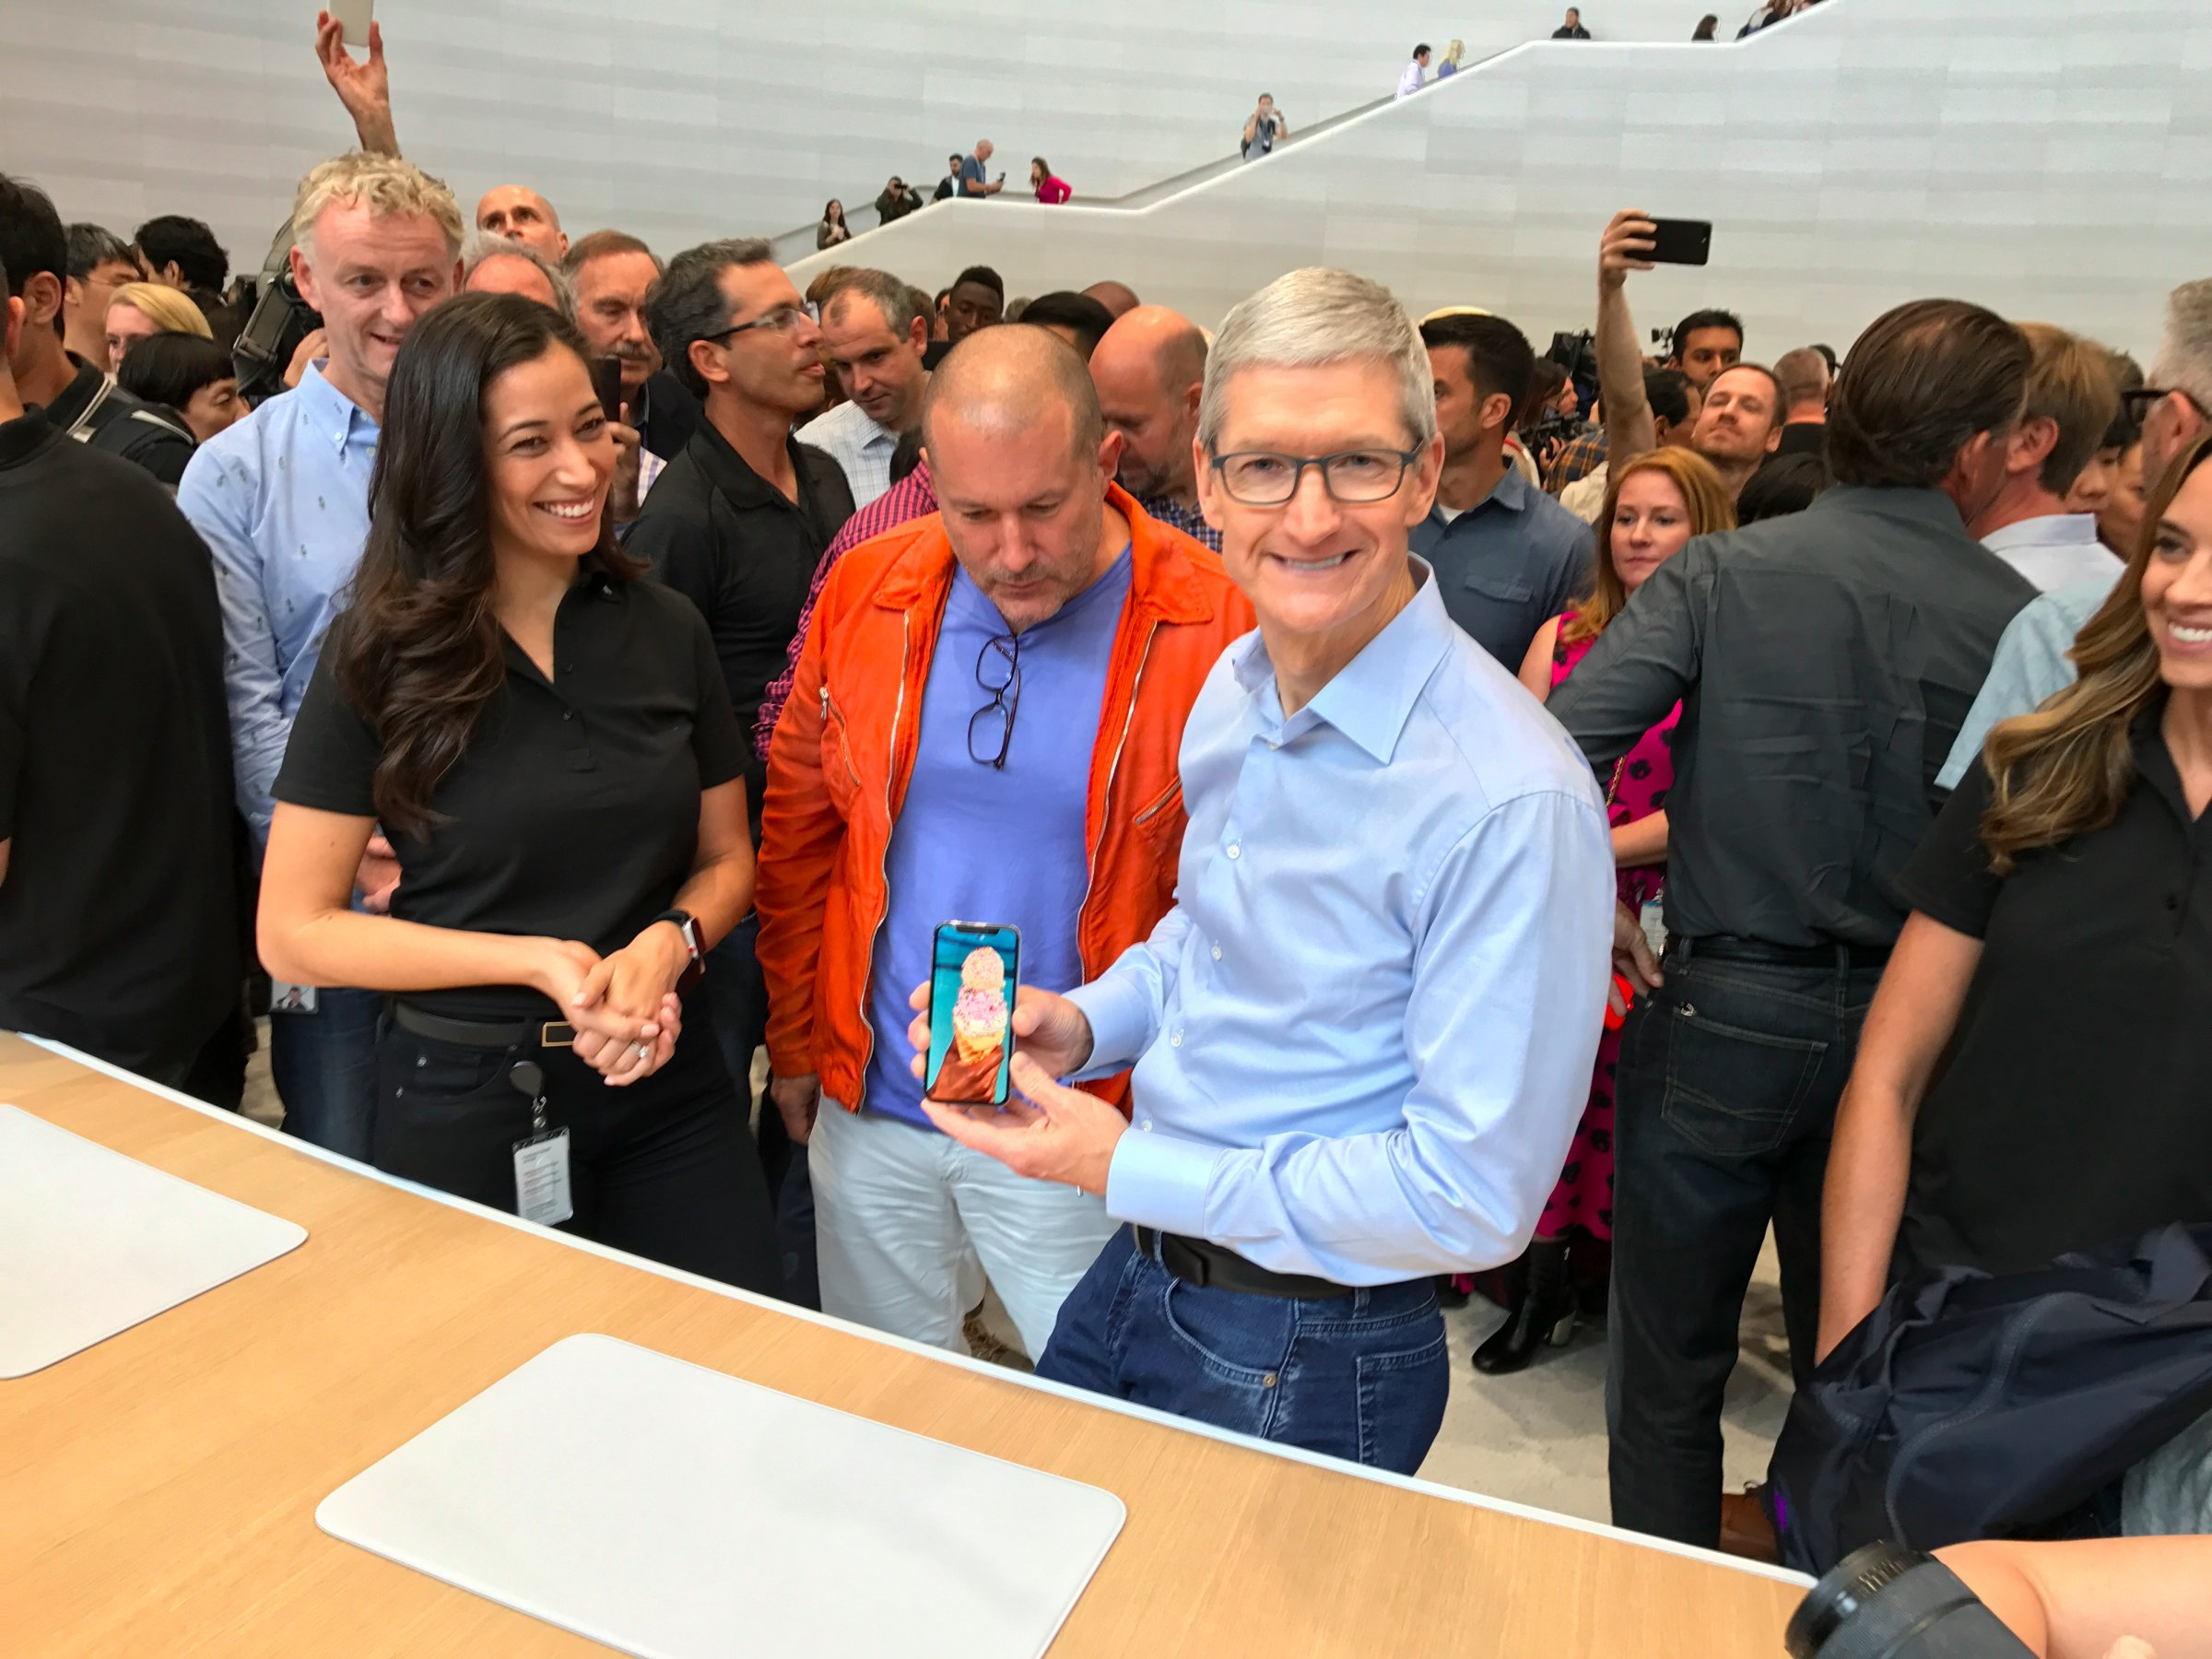 Tim Cook and Jony Ive with iPhone X